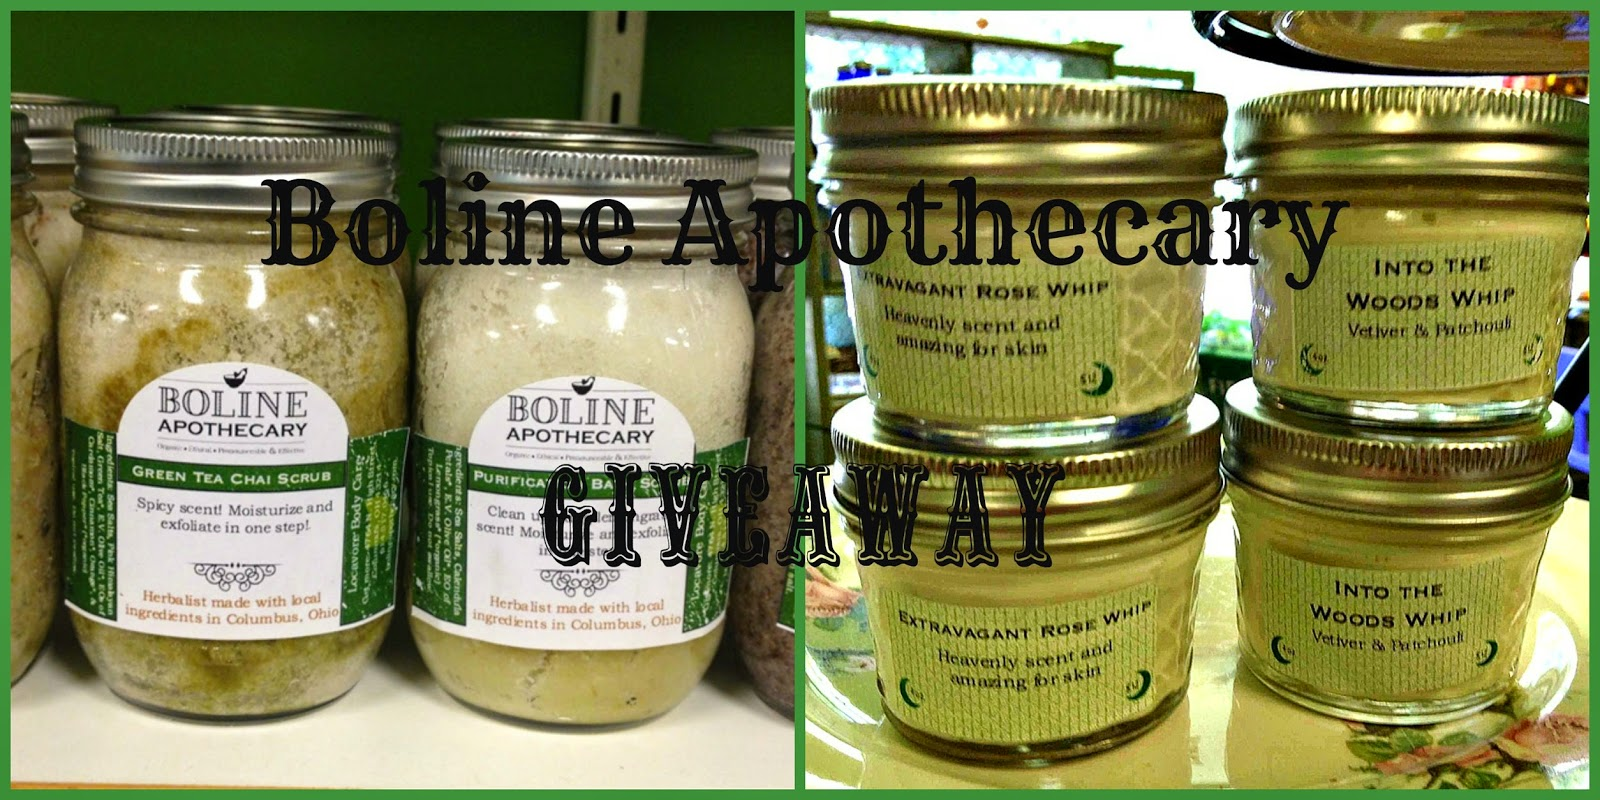 http://mixedbagmama2013.blogspot.com/2015/02/boline-apothecary-giveaway.html